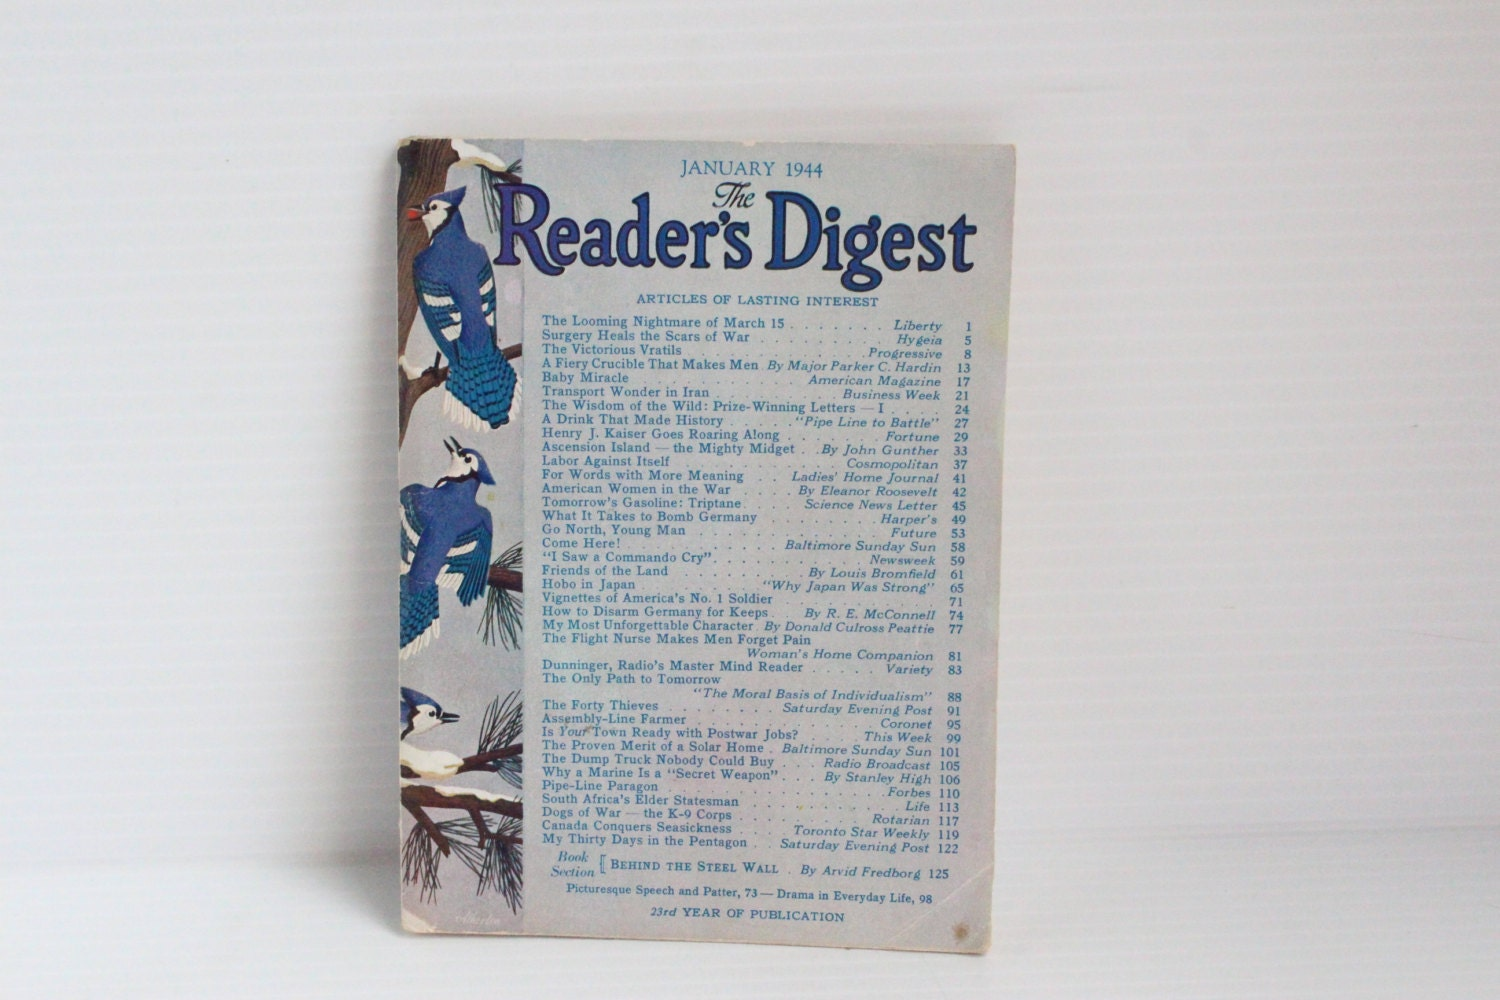 READER'S DIGEST January 1944 Vintage Magazine Vintage